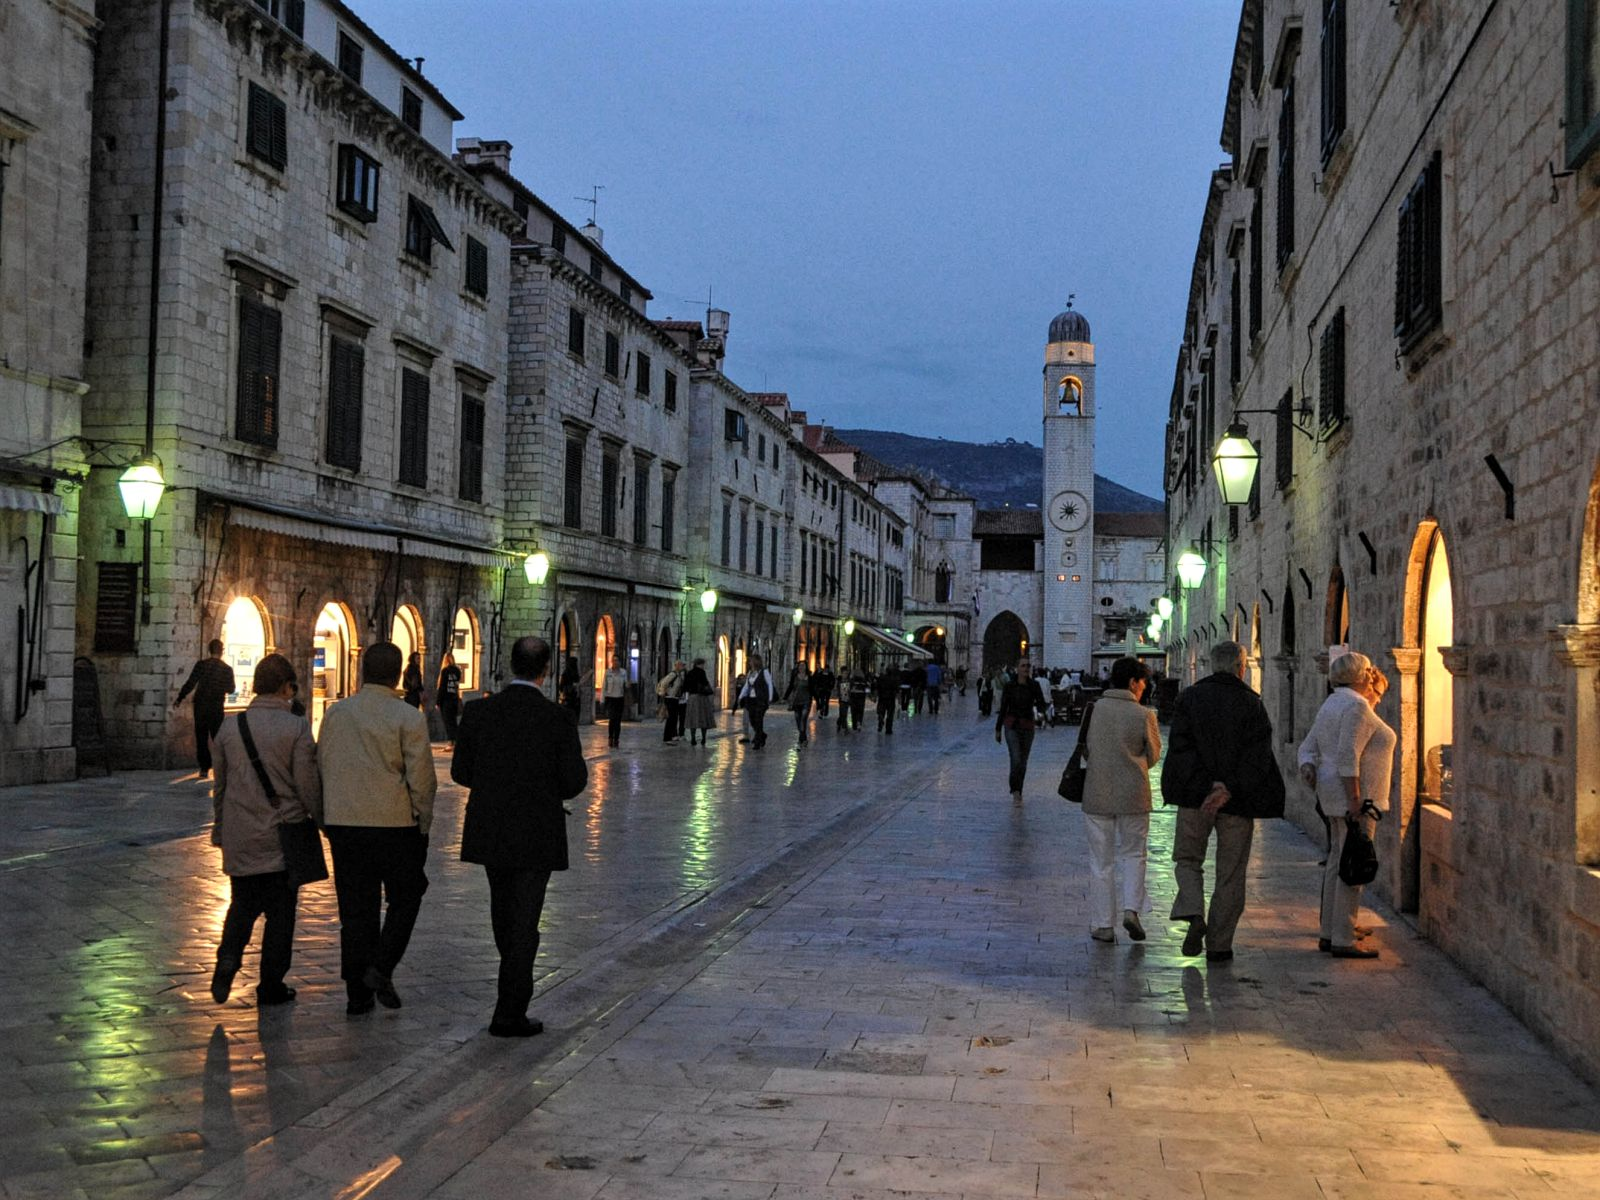 Dubrovnik City Walk 2016 - Palaces, Streets and Squares